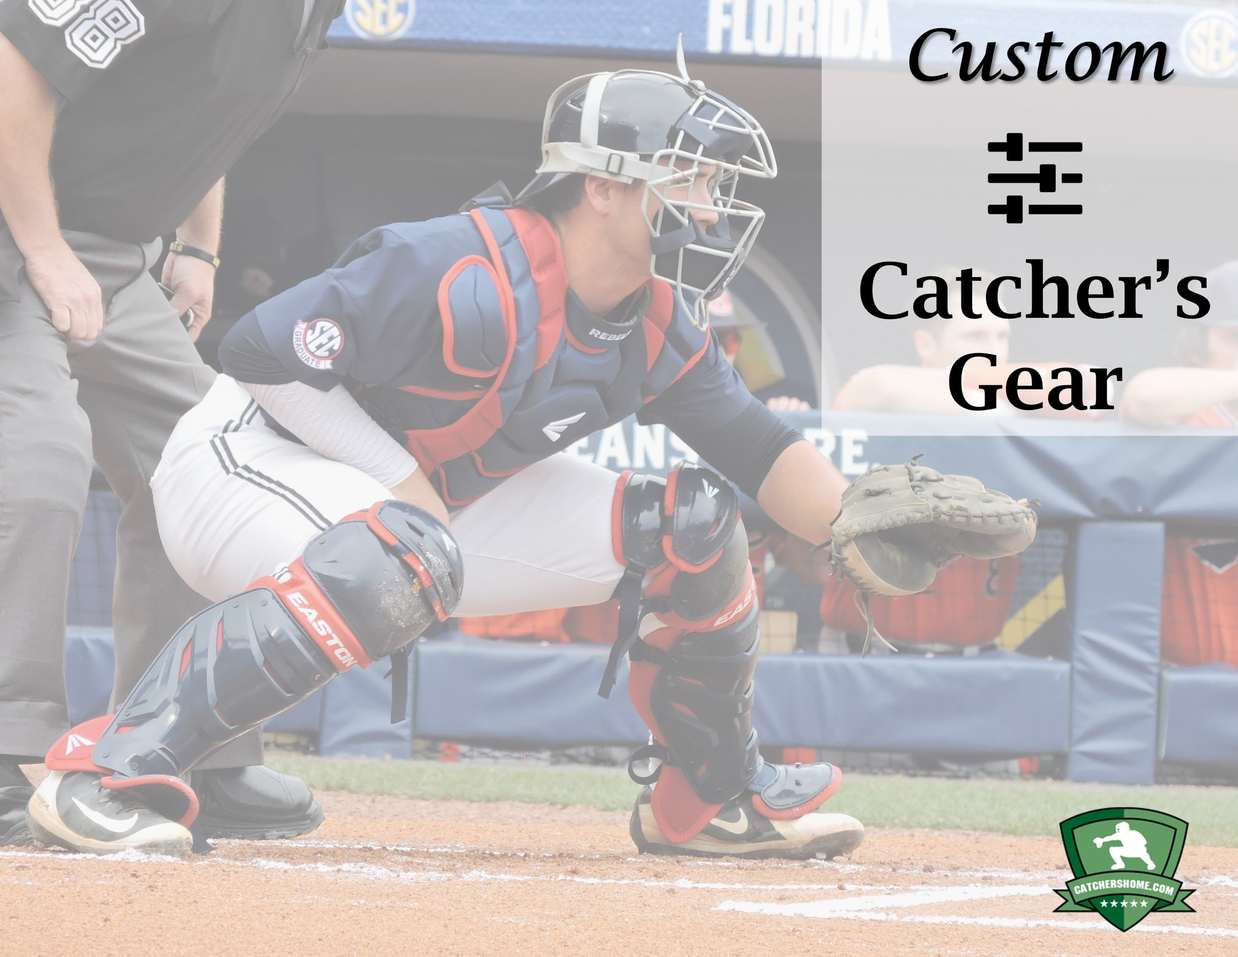 Custom catchers gear article, where you can find all your options for customized gear for catchers